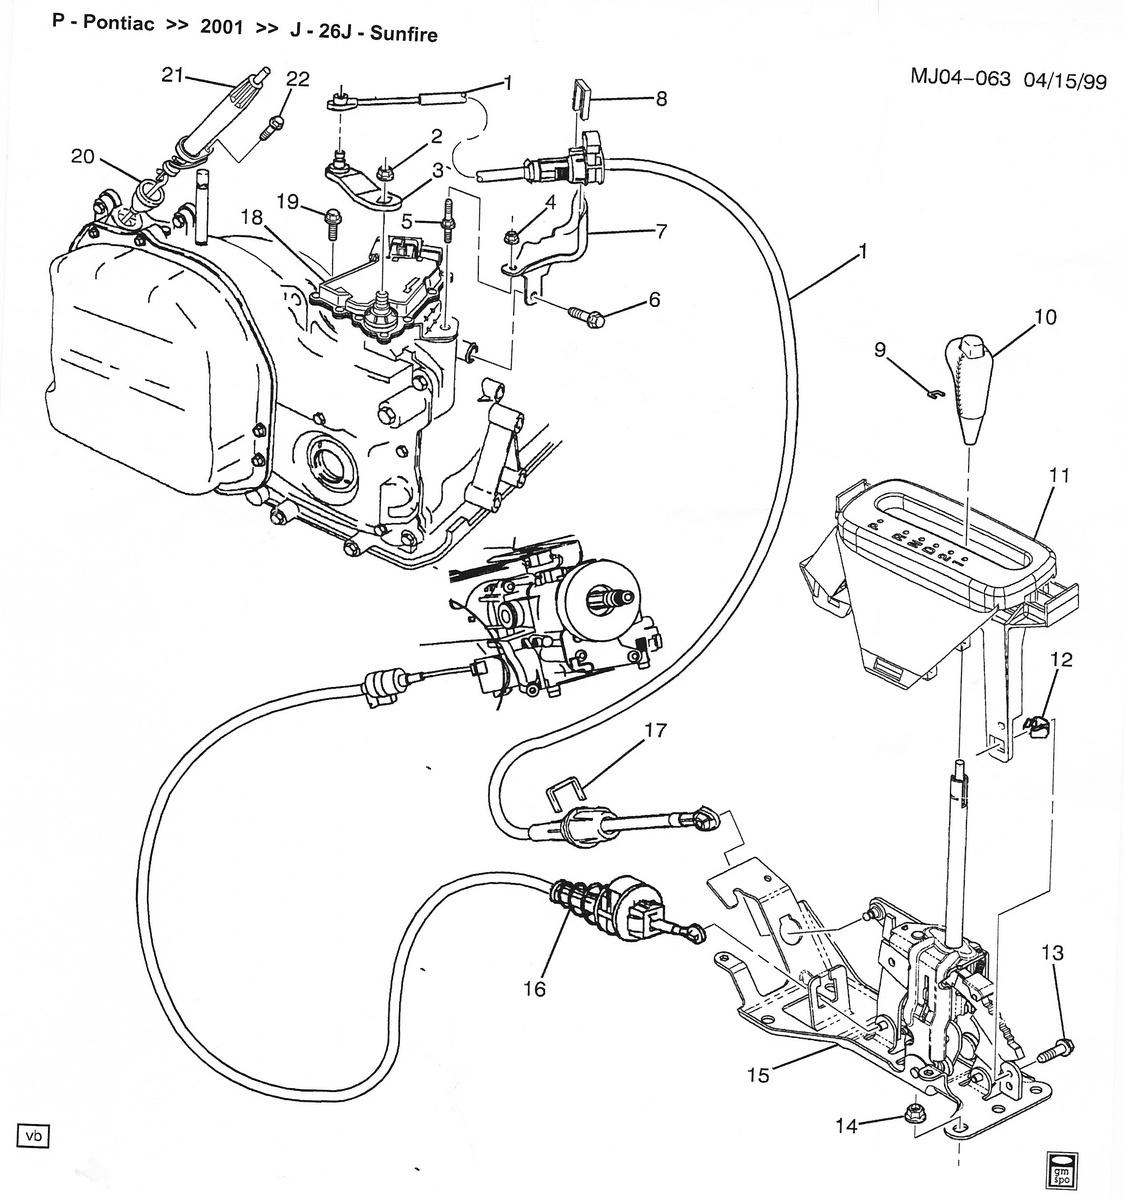 Bad Coolant Hose 2560656 additionally Heater Core Location 2001 Hyundai Accent besides 91035 2003 Cadillac Cts Coolant Thermostat furthermore Engine Diagram 1997 Honda Accord also Nissan Sentra Coolant Bleeder Location. on honda civic coolant bleeder valve